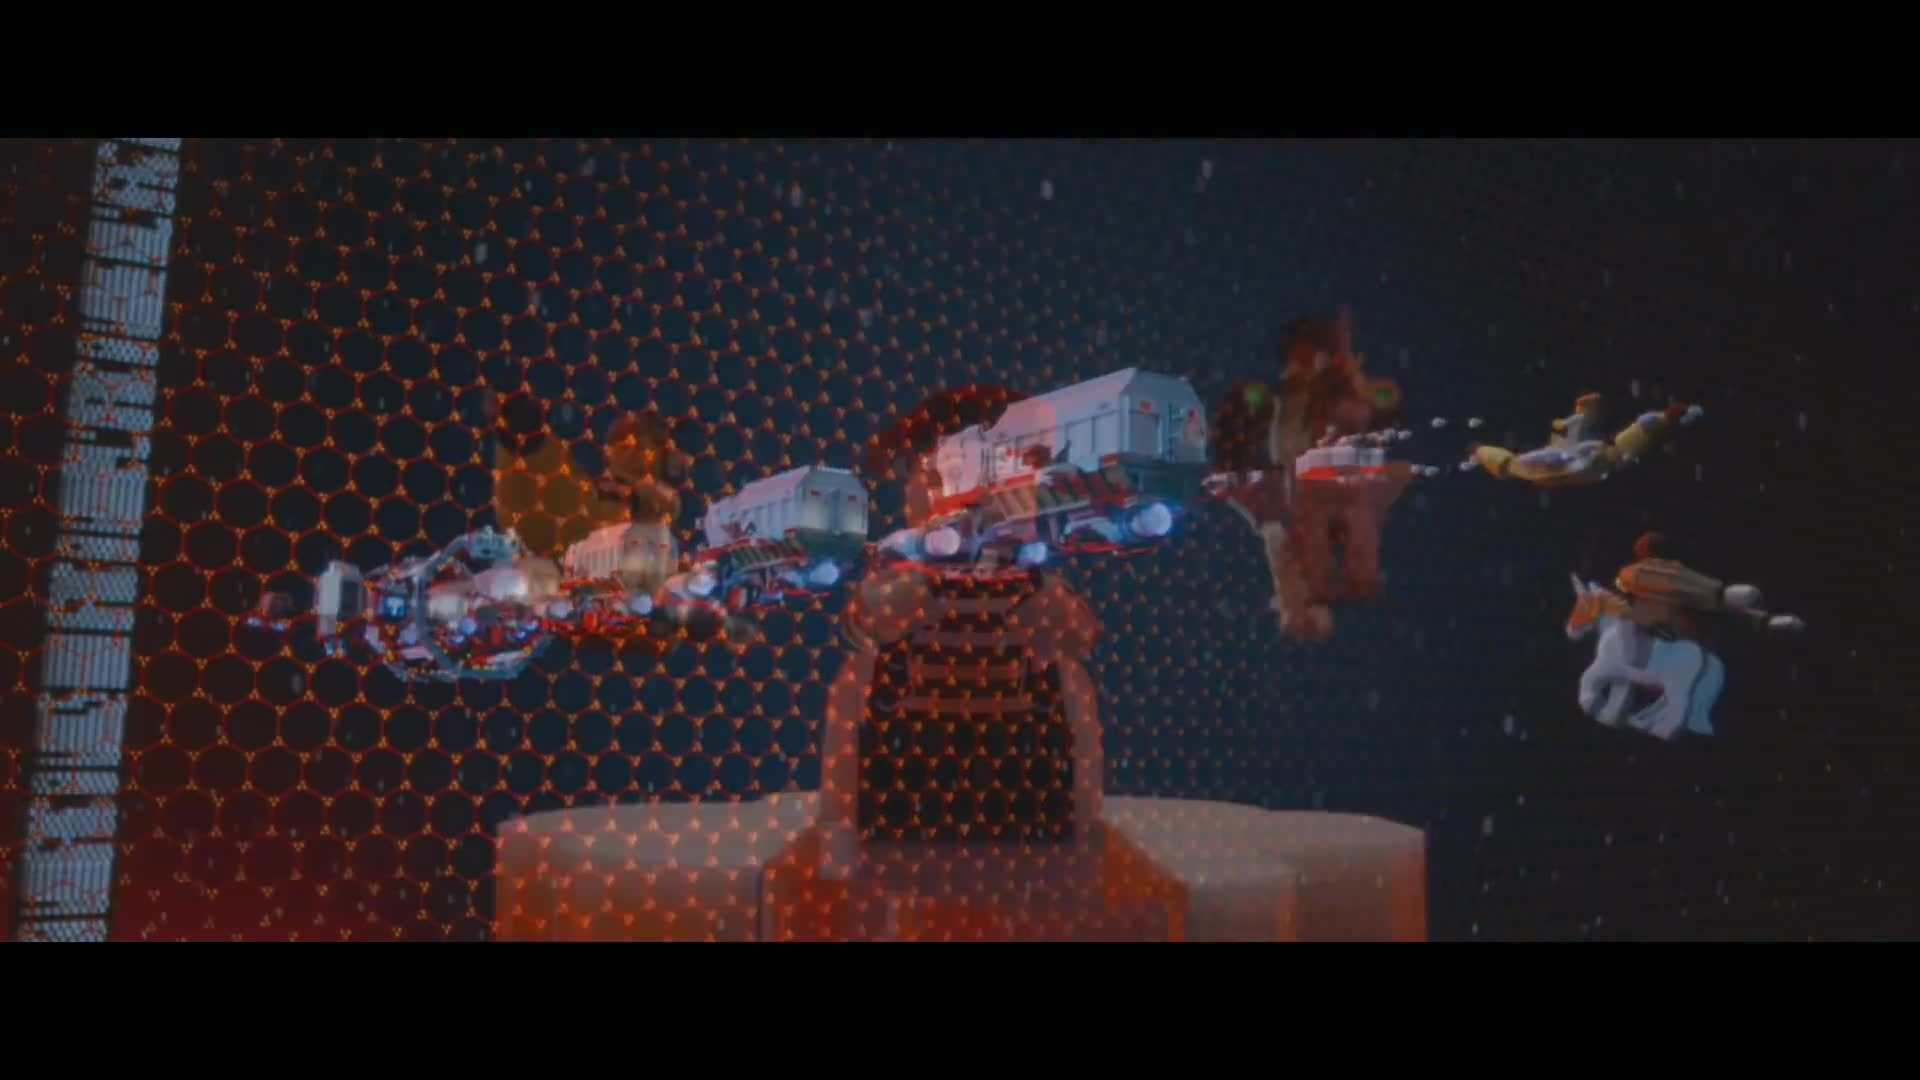 worldnews, The LEGO Movie - Lasers, Sharks, Laser Sharks GIFs